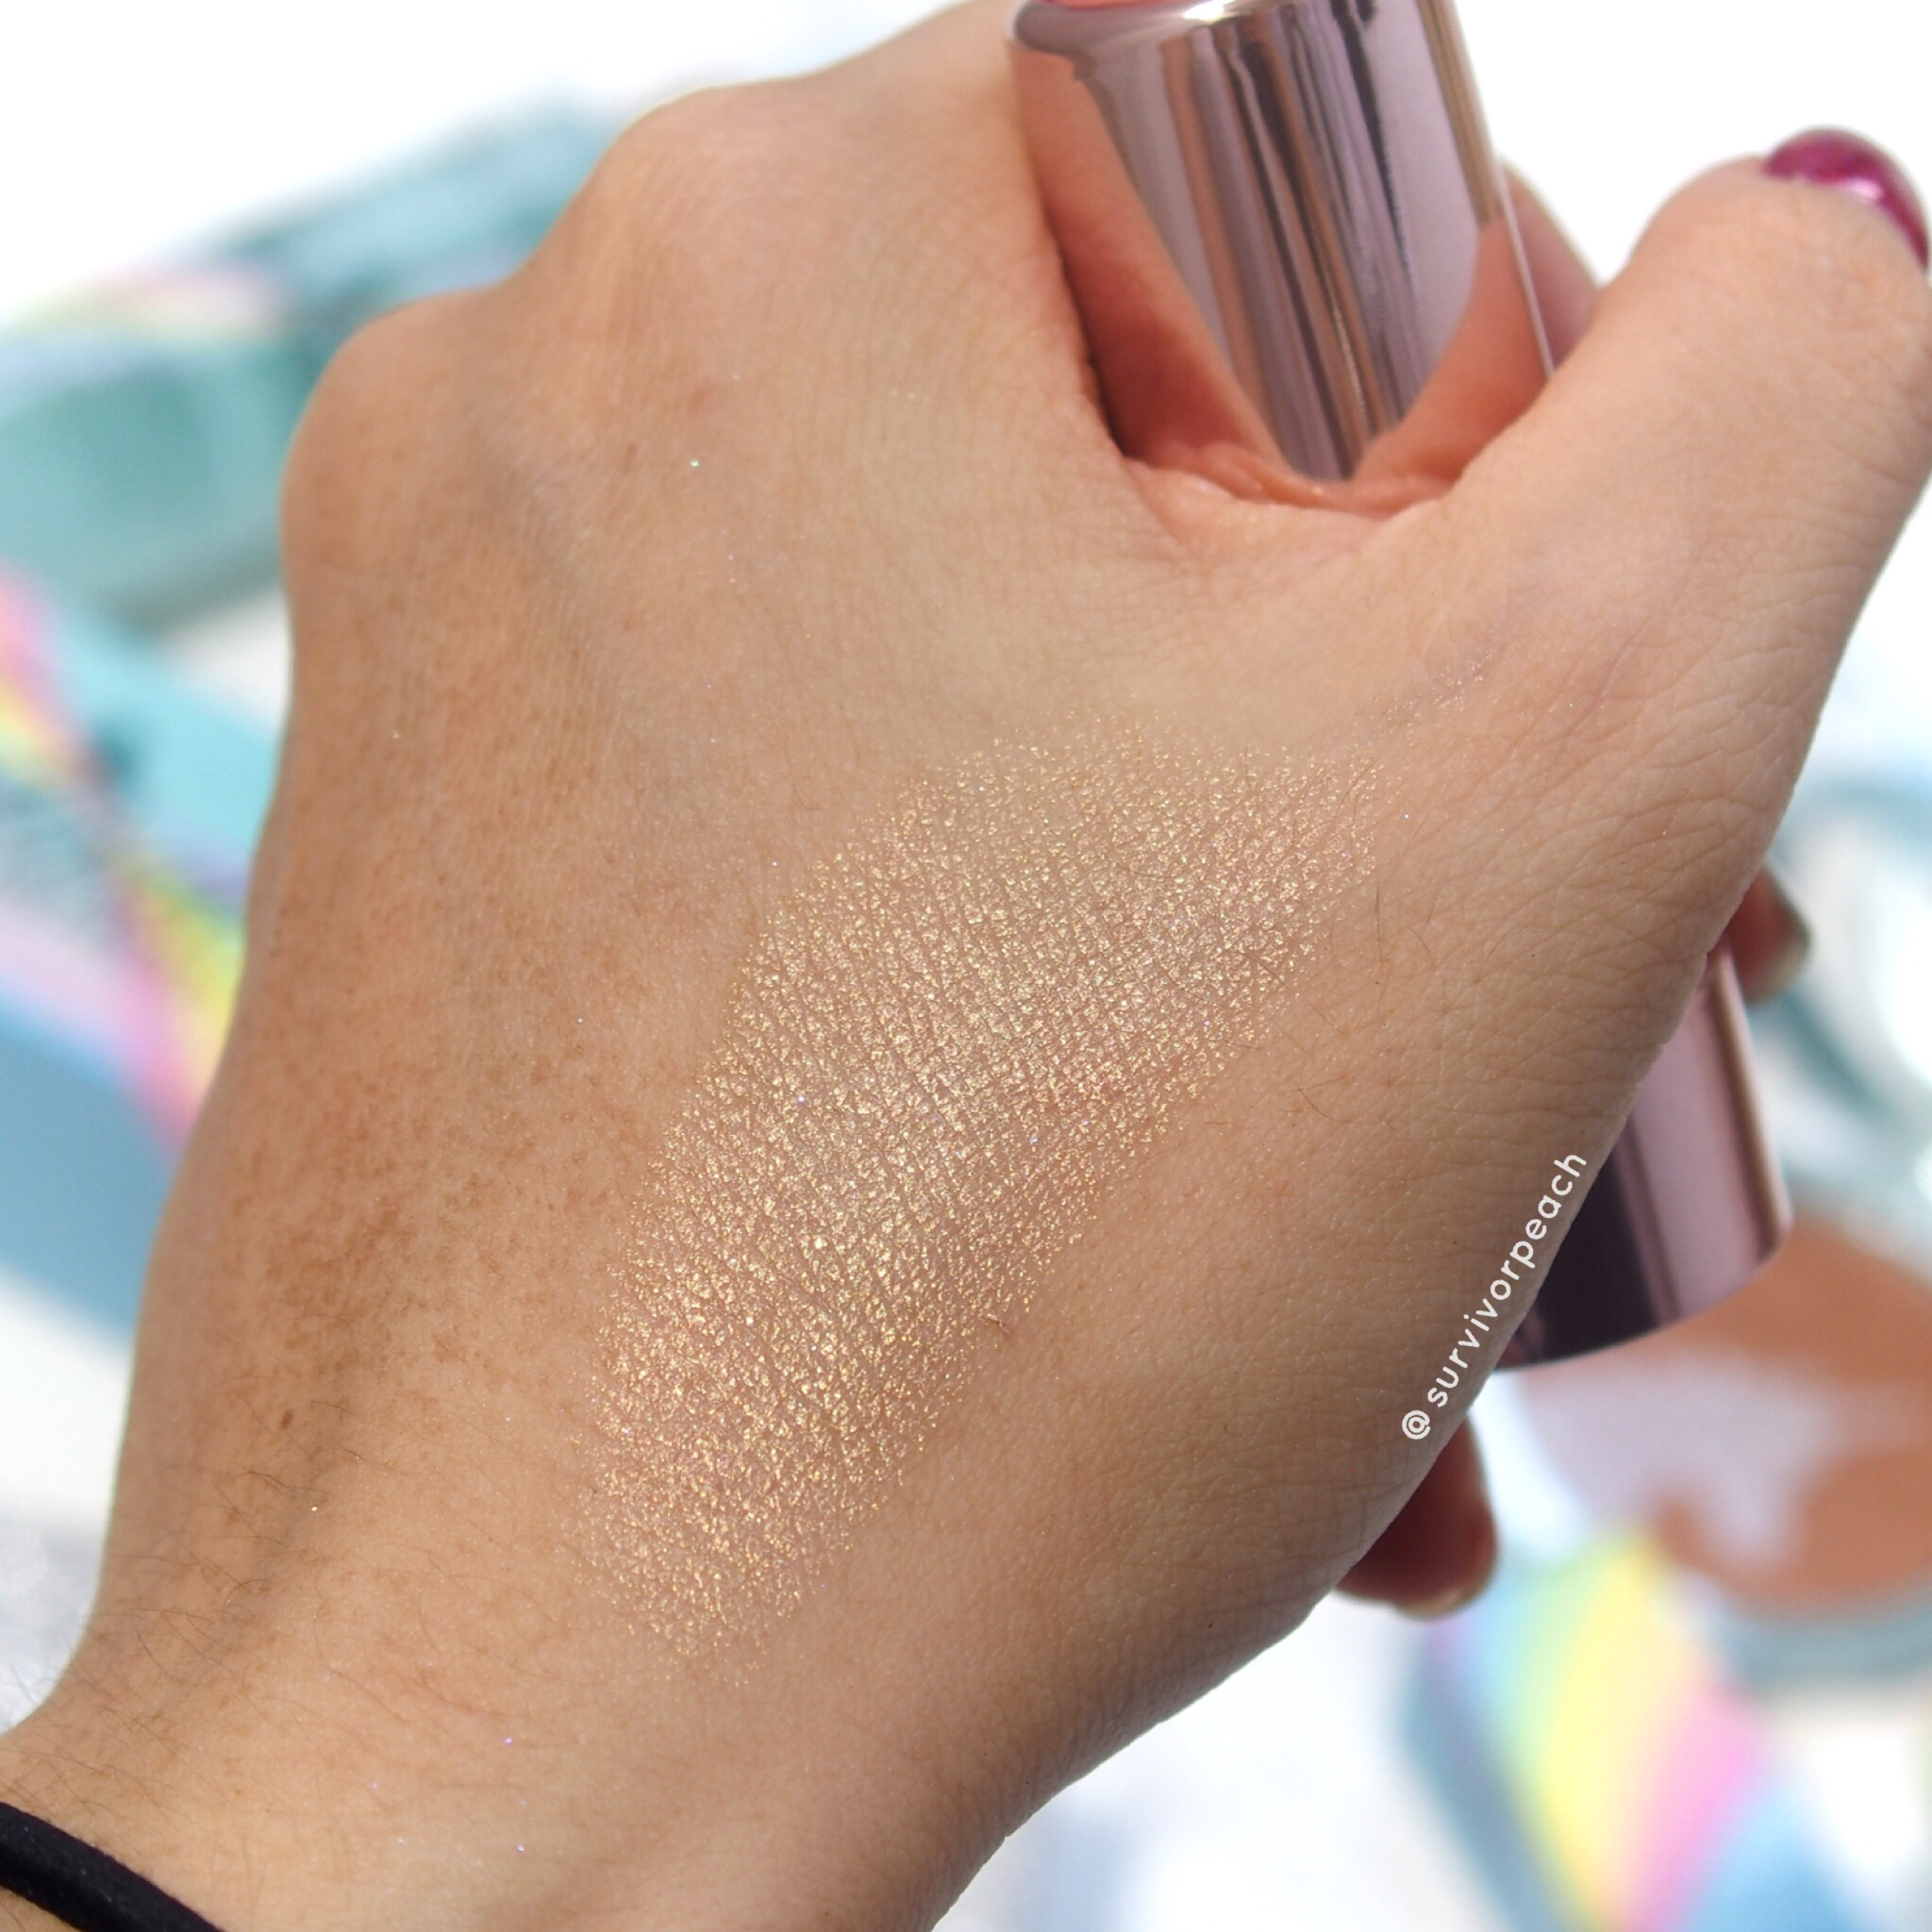 Toofaced Unicorn Horn Mythical Effects Highlighting Stick swatches